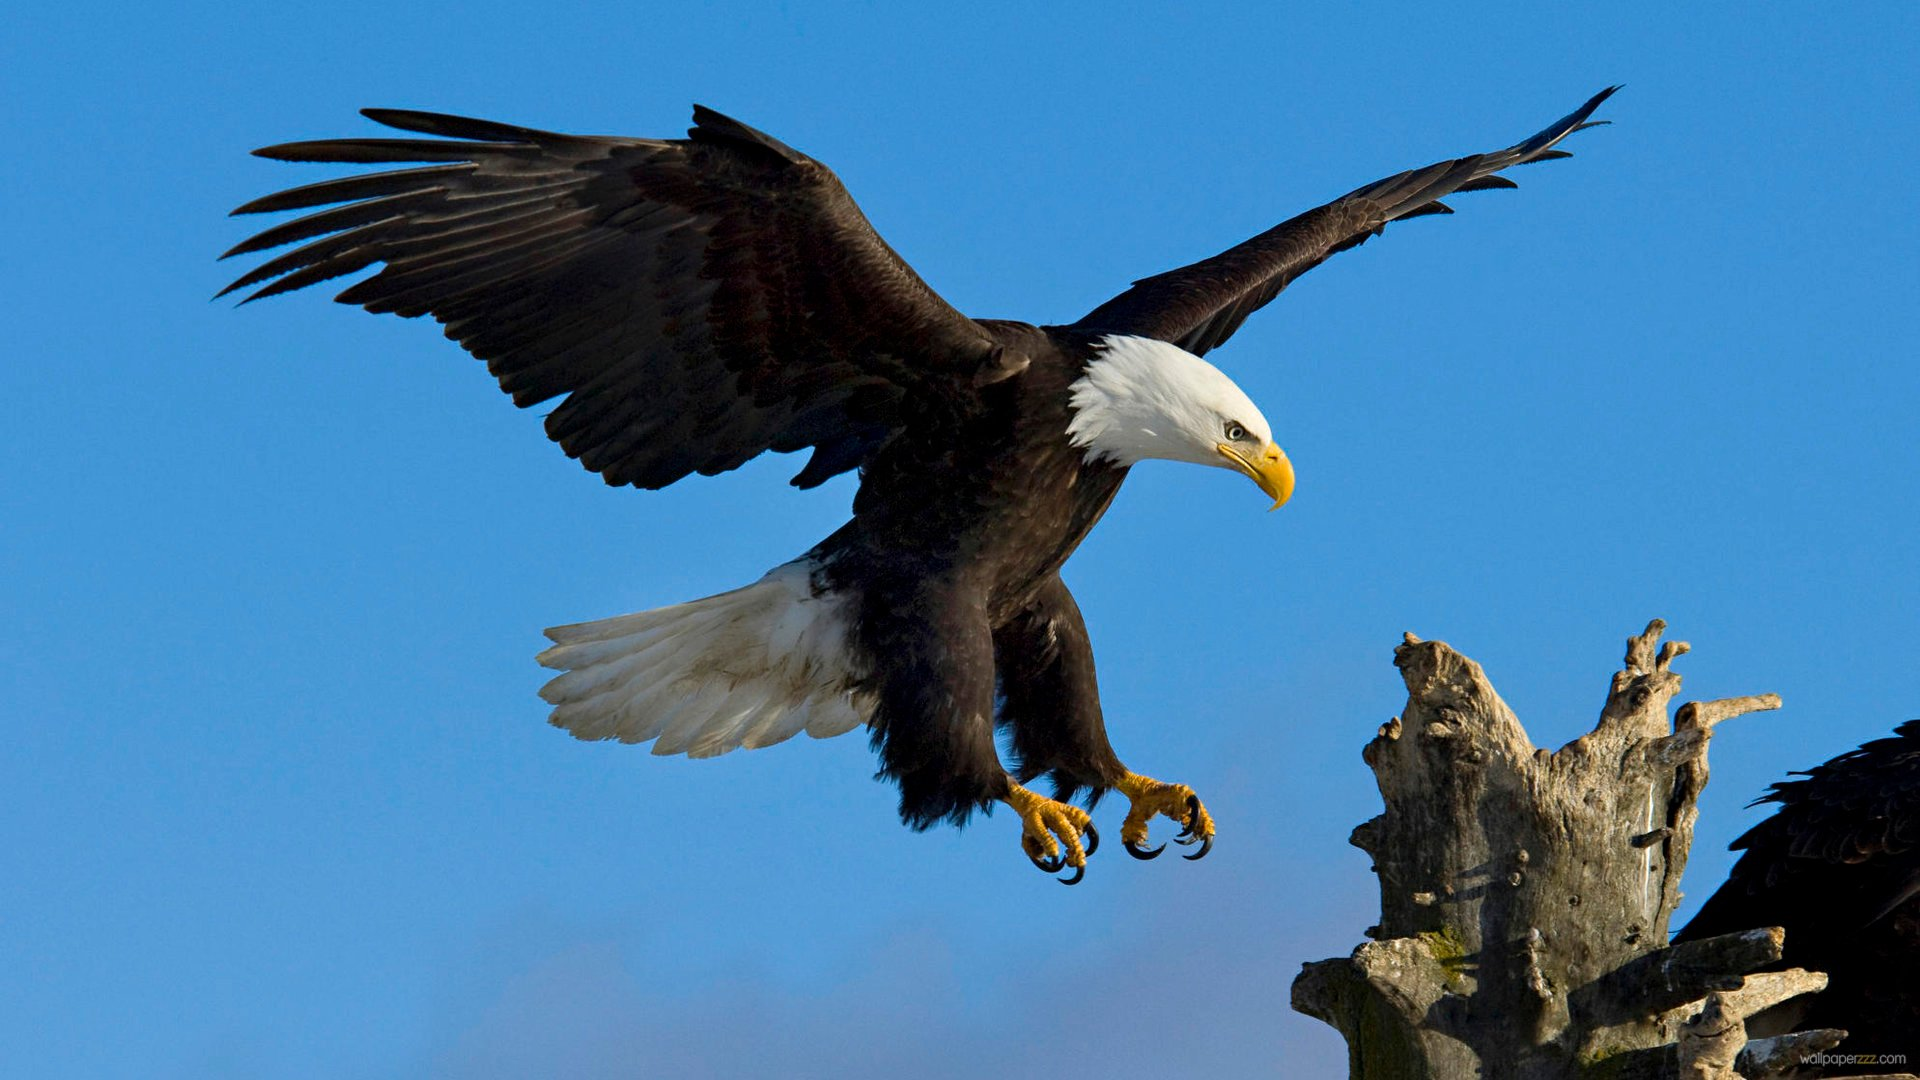 Eagle-13-Wallpaper-Background-Hd